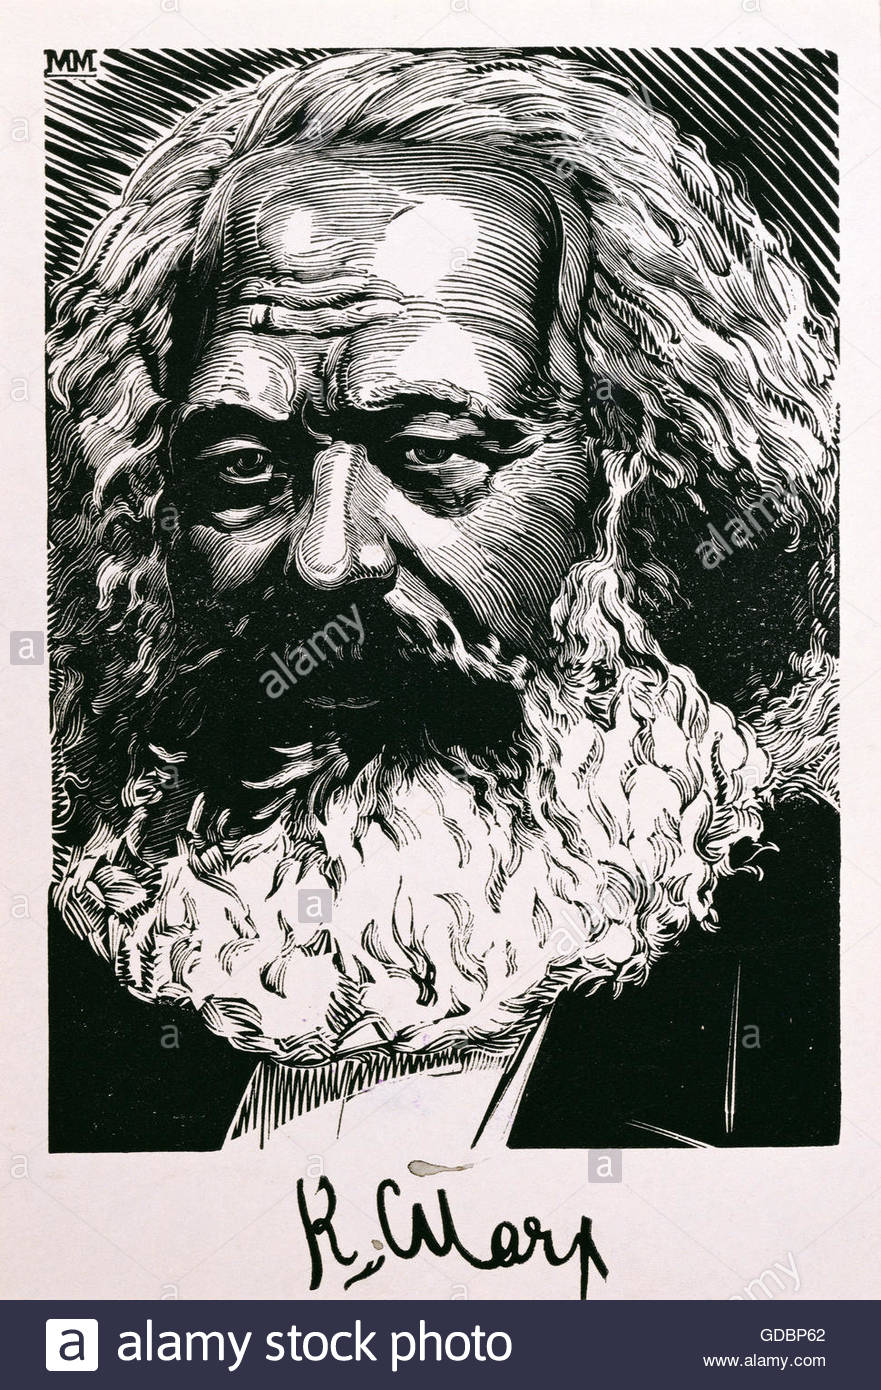 Marx, Karl, 5.5.1818 - 14.3.1883, German philosopher, graphic, woodcut, portrait, 17 cm x 10.9 cm, possibly by Michail - Stock Image